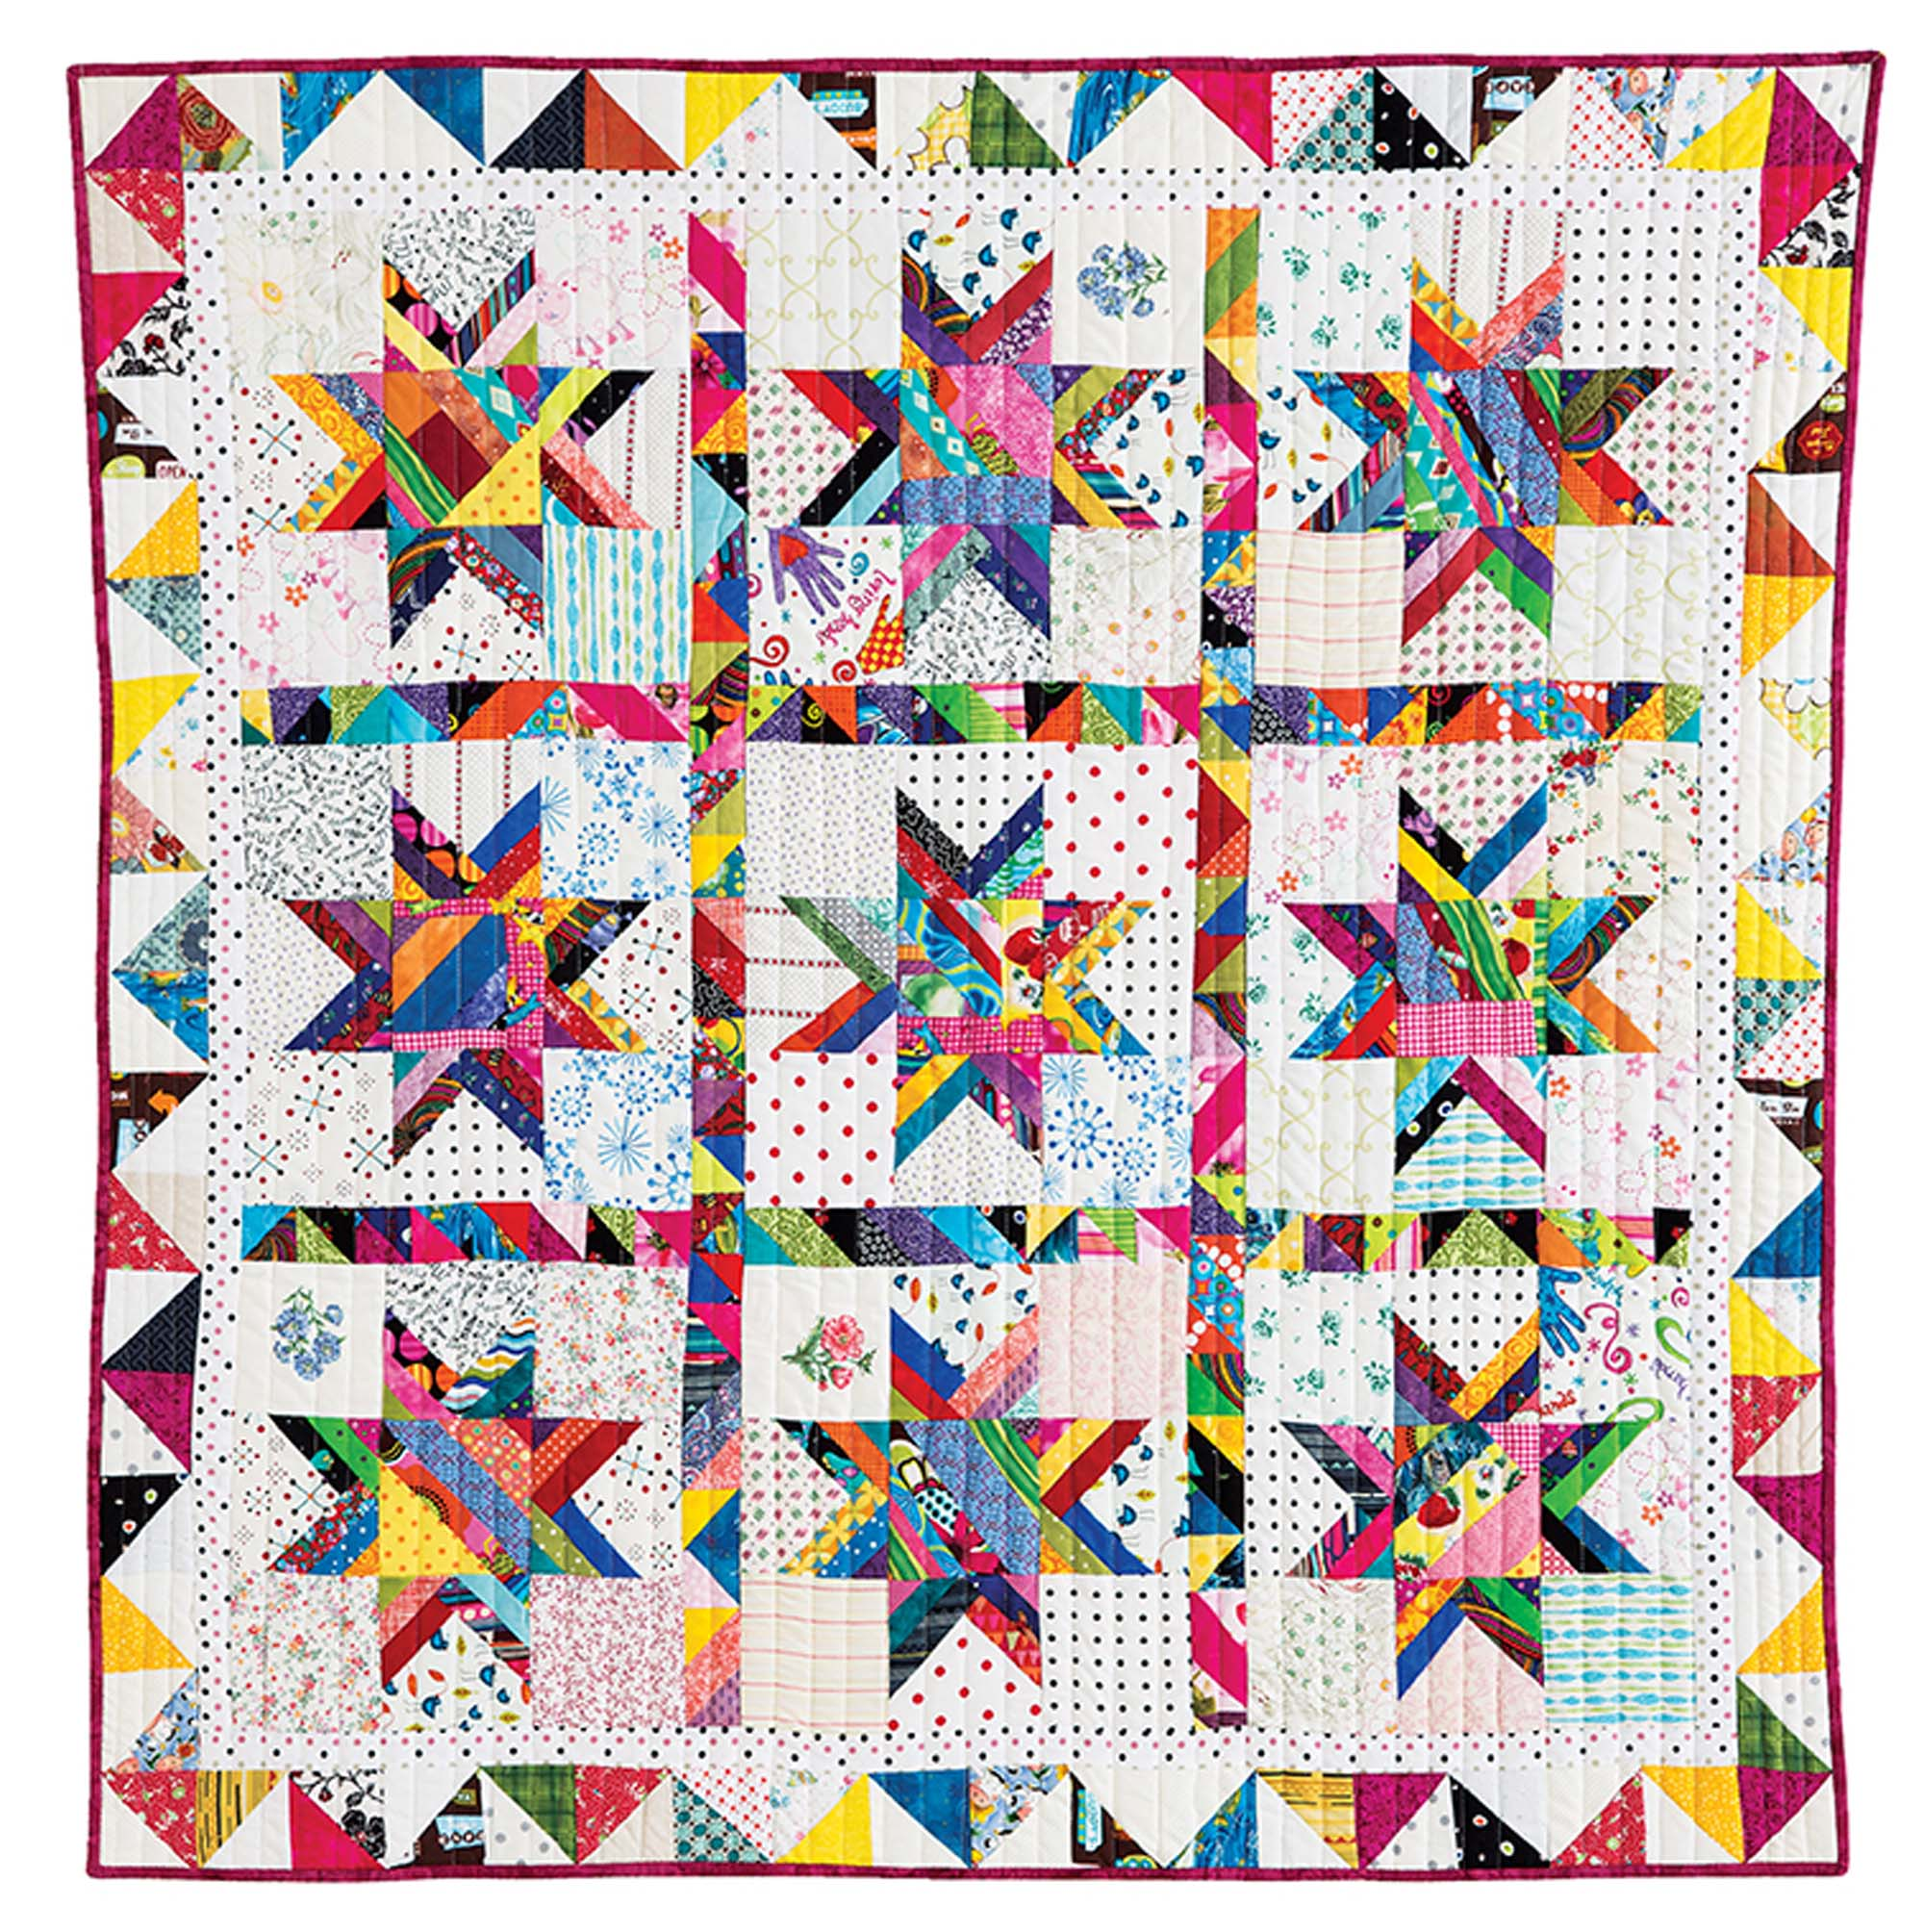 quilt-piccadilly-circus-flat